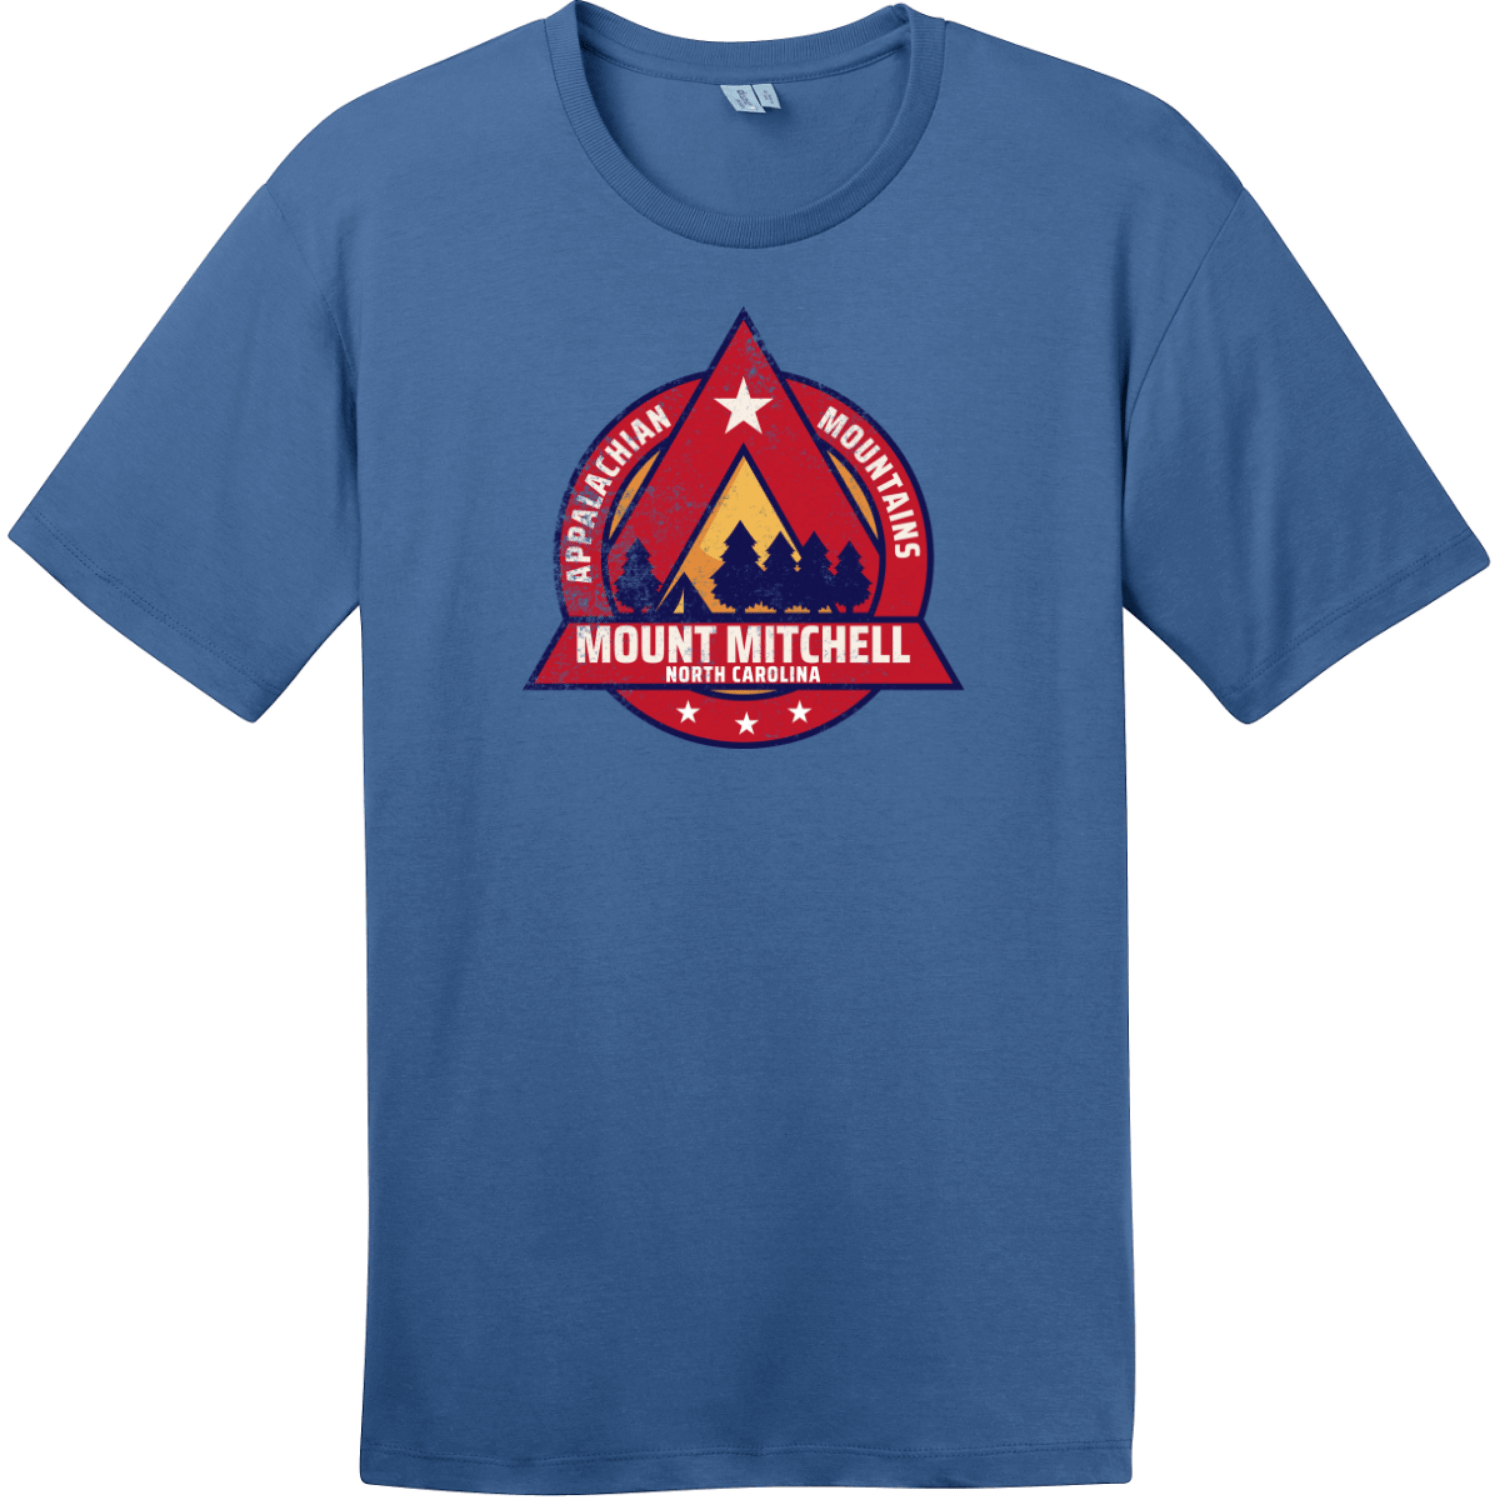 Mount Mitchell North Carolina Camping T-Shirt Maritime Blue District Perfect Weight Tee DT104